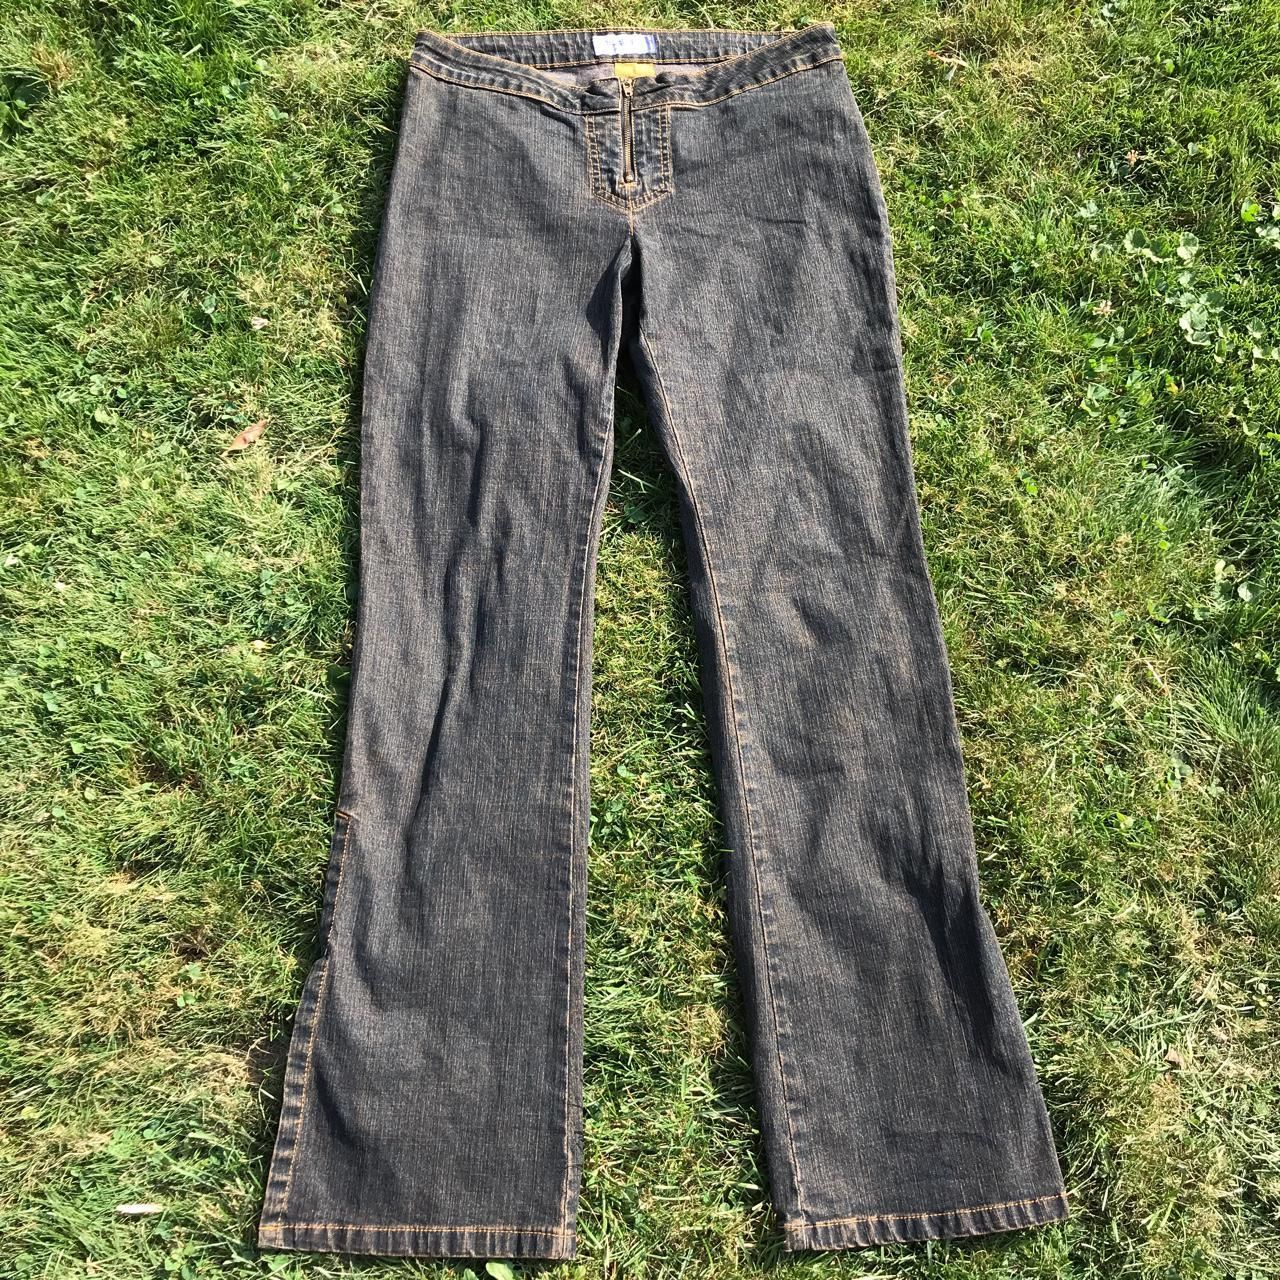 Product Image 1 - Y2k statement jeans with zipper